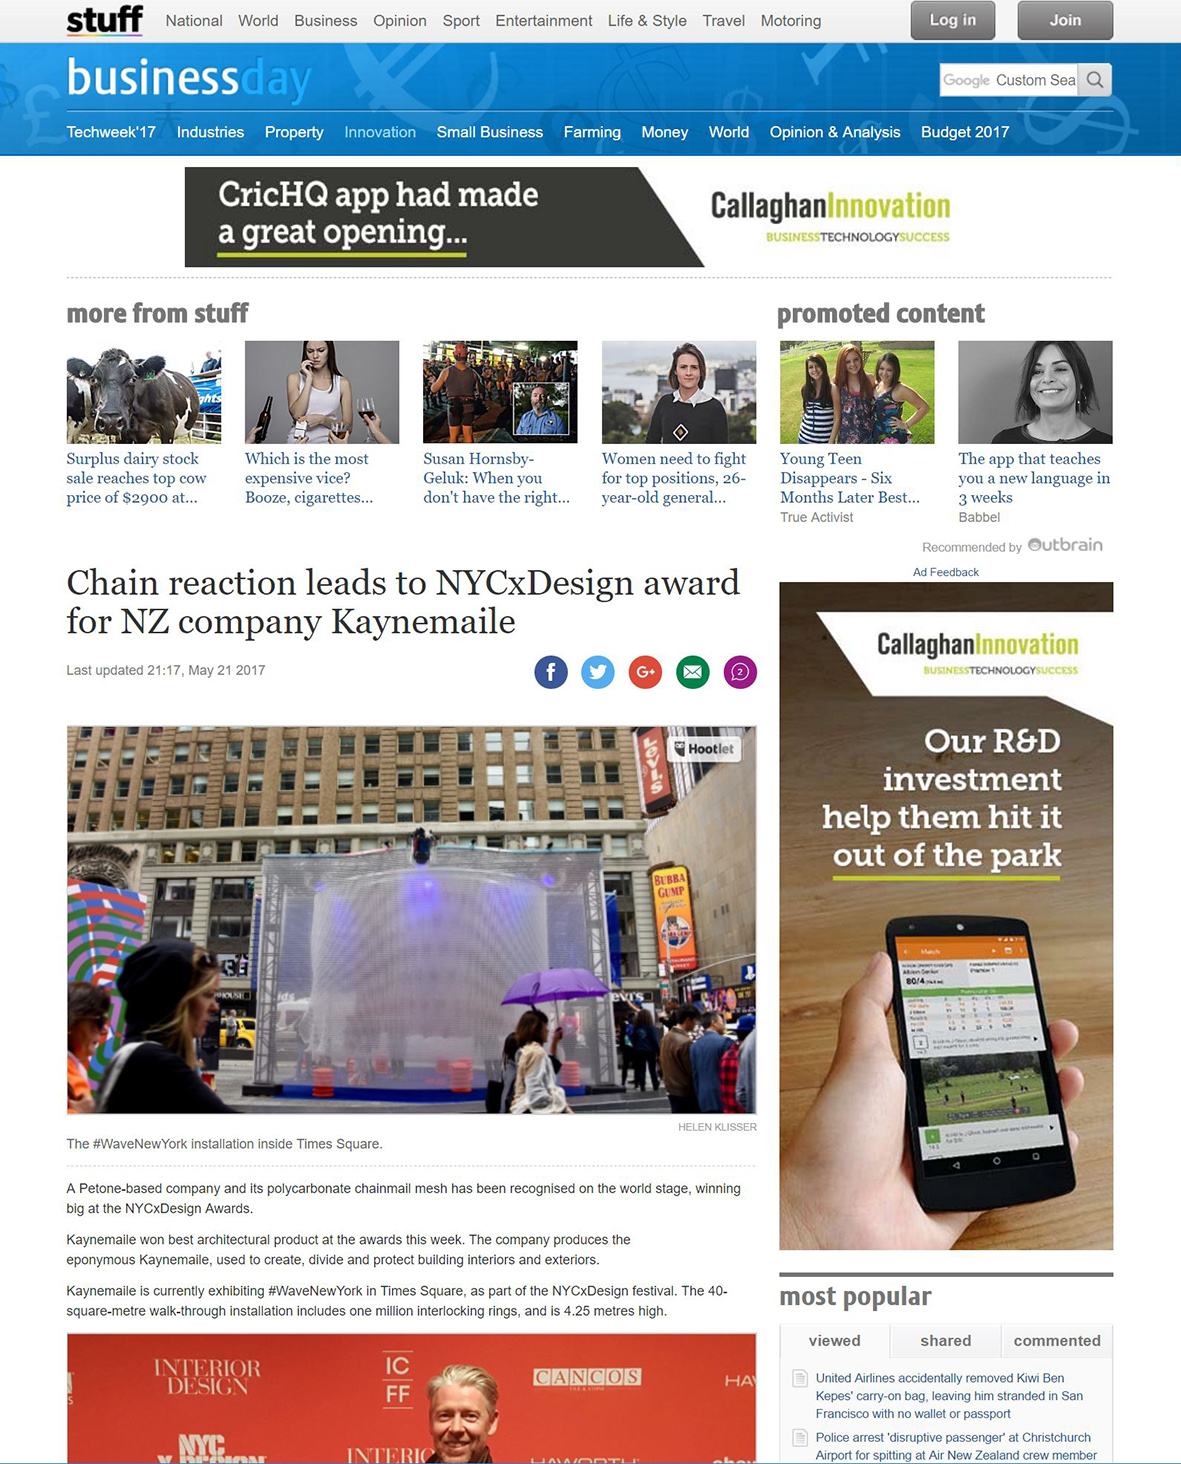 Stuff: Chain reaction leads to NYCxDesign award for NZ company Kaynemaile